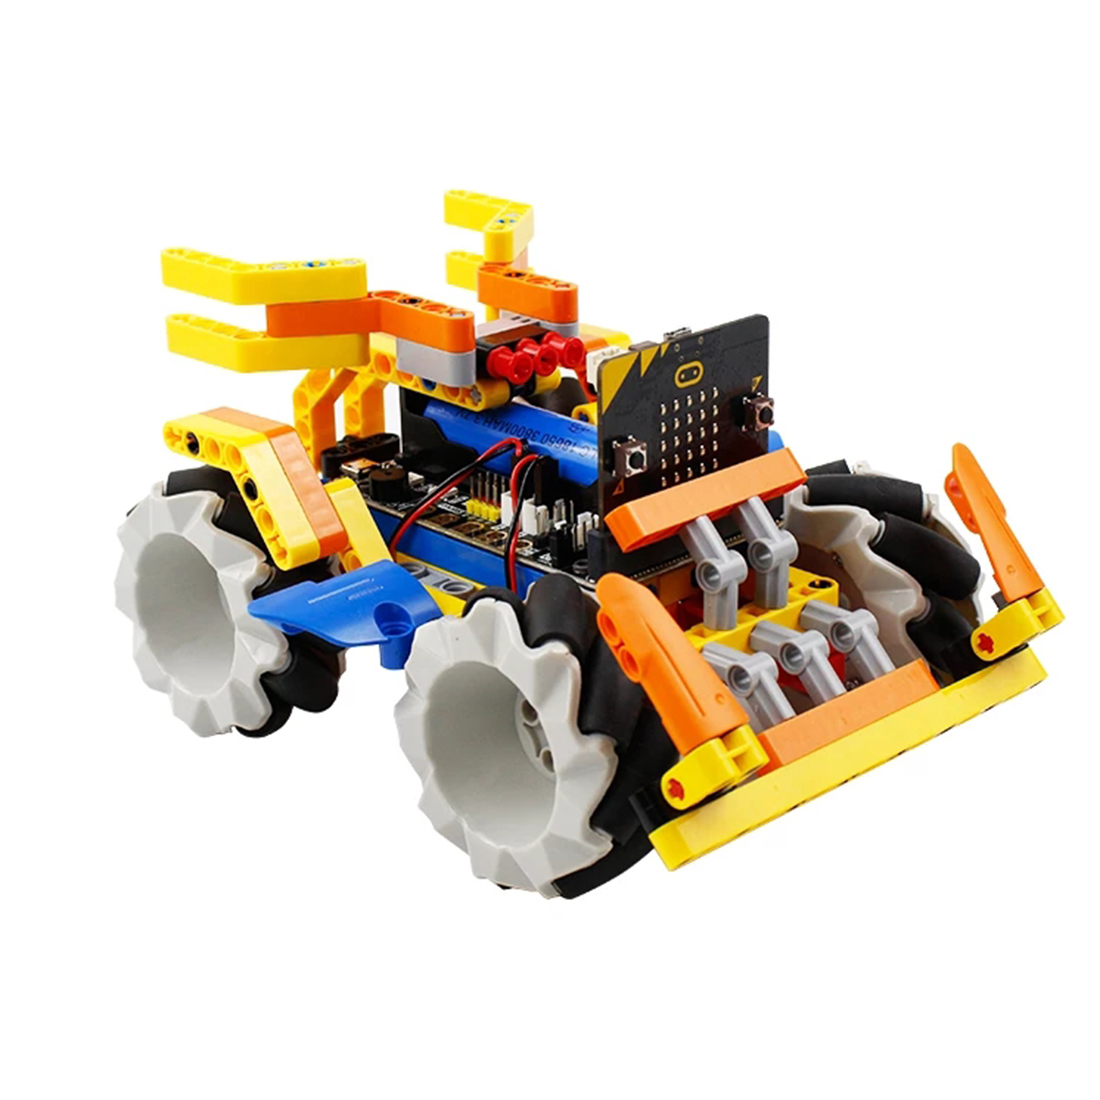 Programmable Intelligent Robot Building Block Kit Mecanum Wheel Robot Car for Micro: bit Gift (Without/With Micro:bit Board) 1